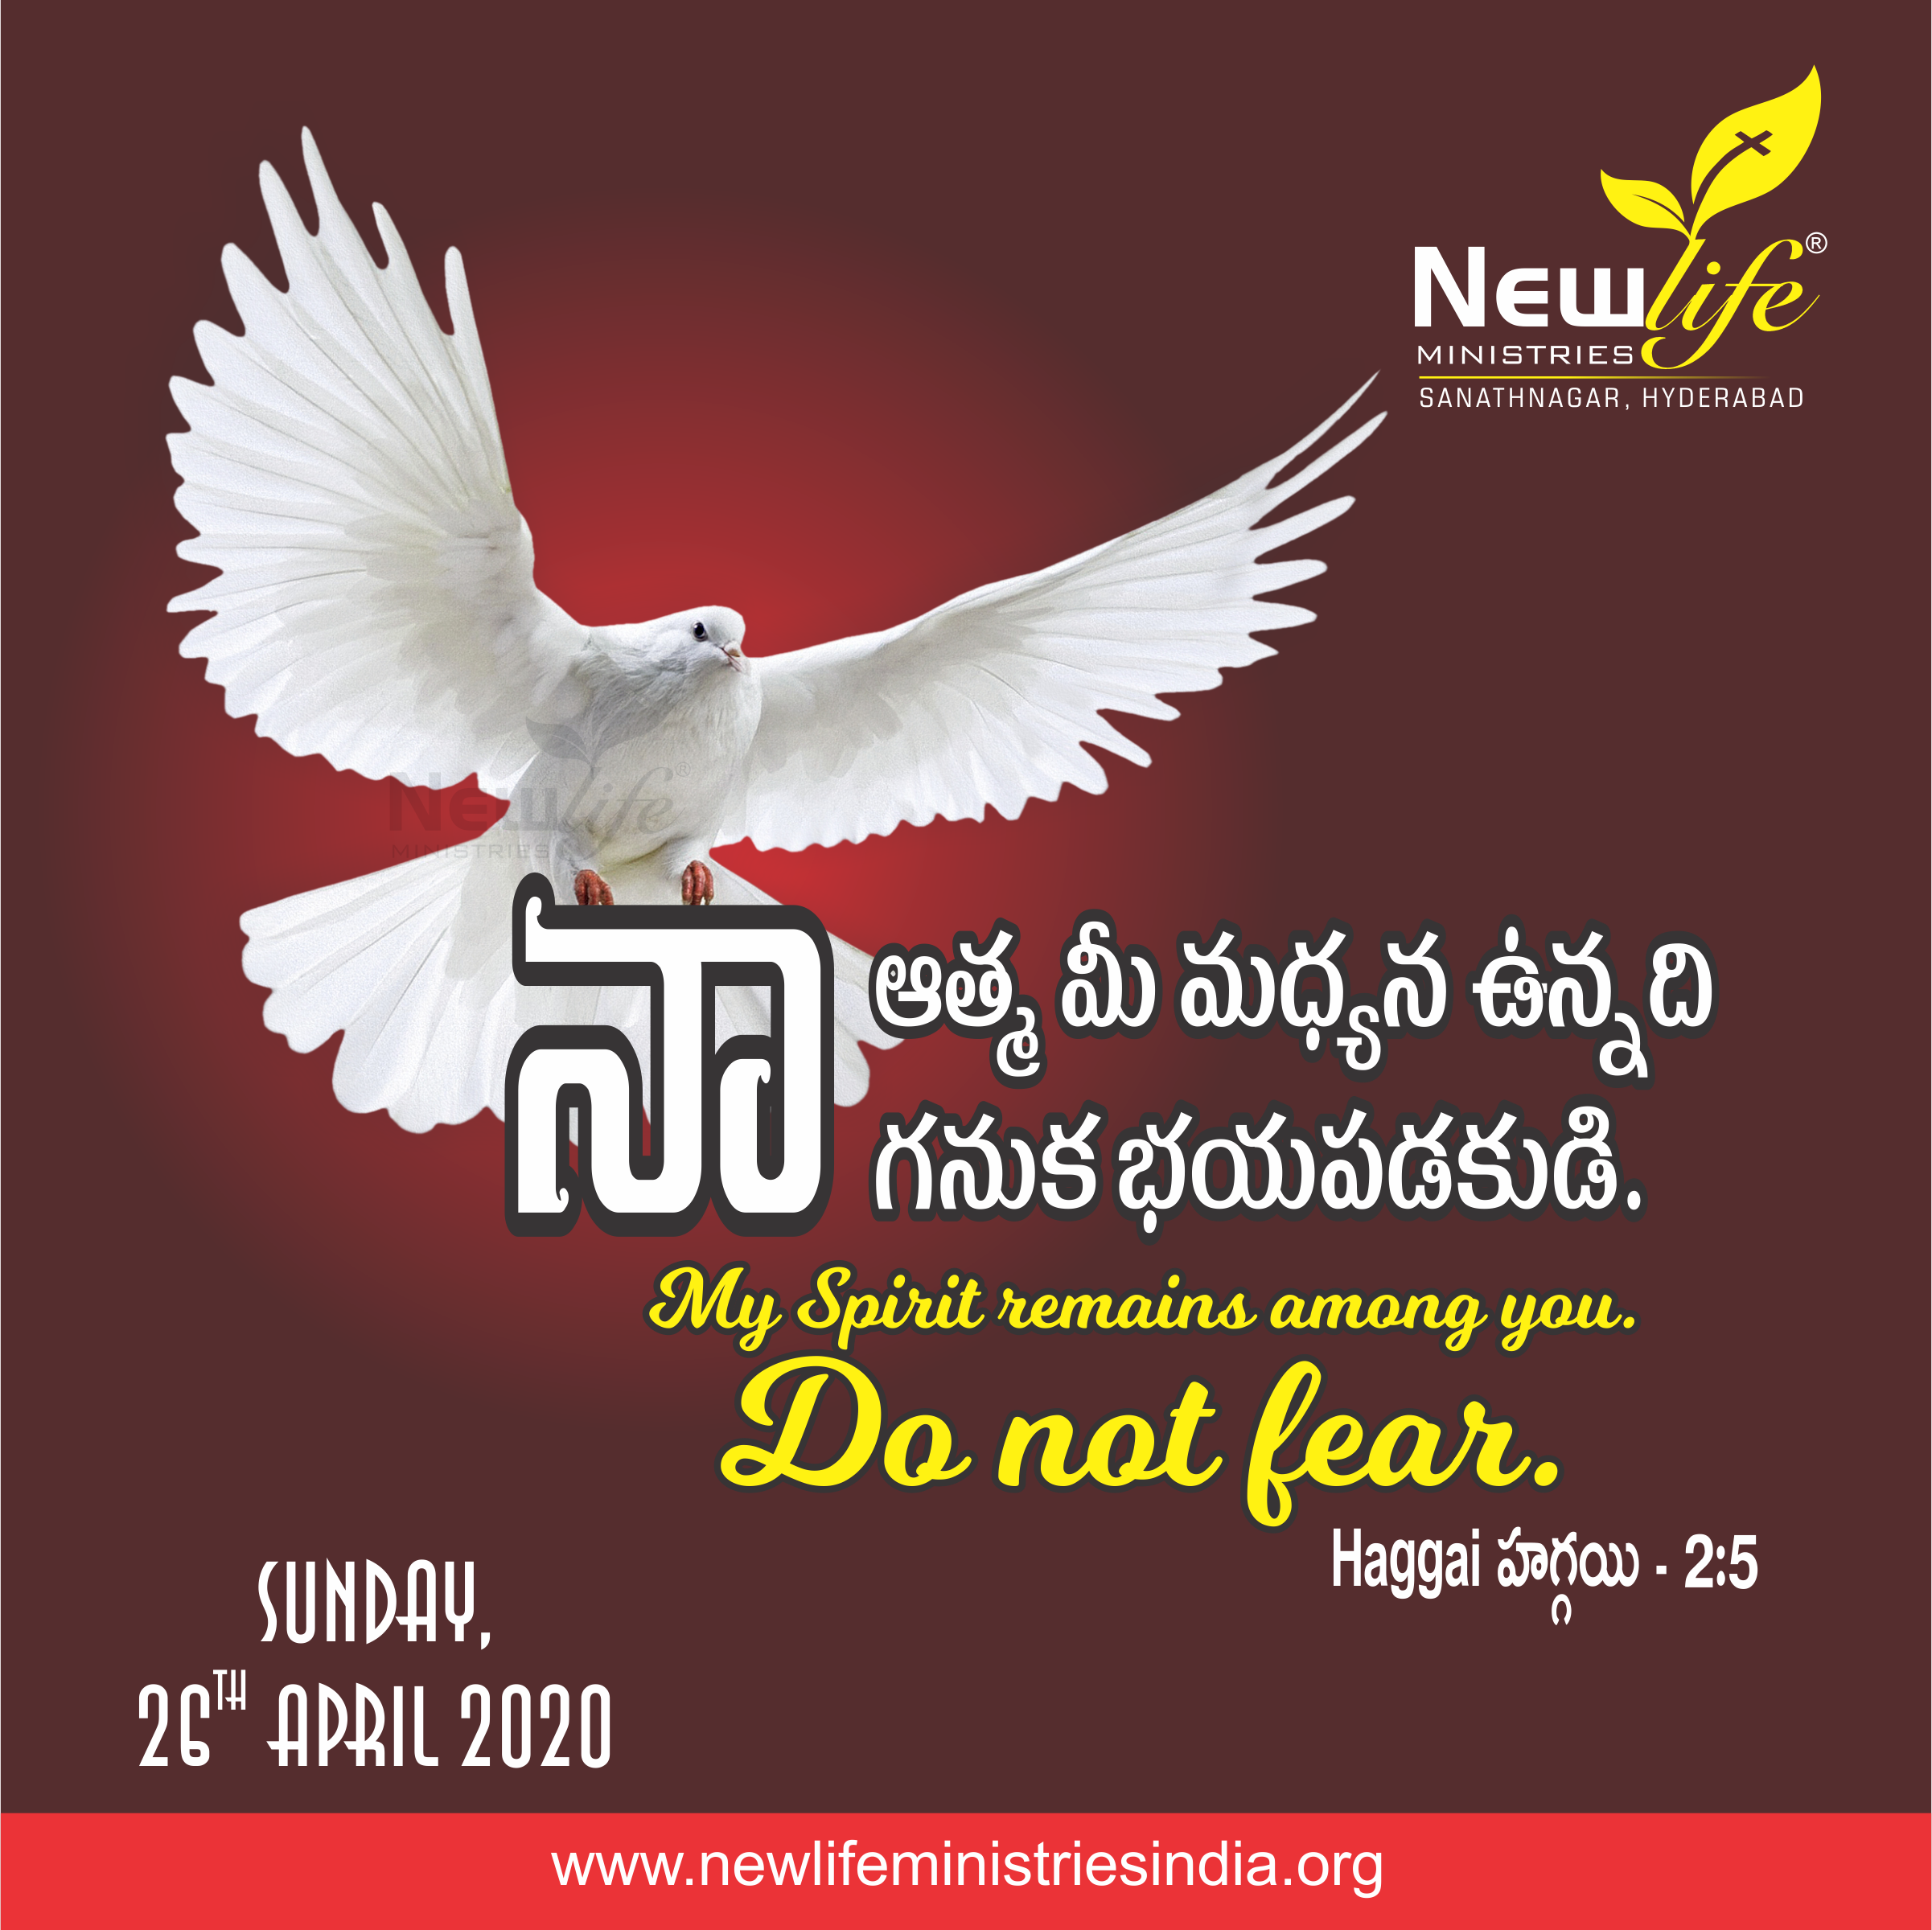 Haggai హగ్గయి 25 in 2020 Do not fear, My spirit, Fear